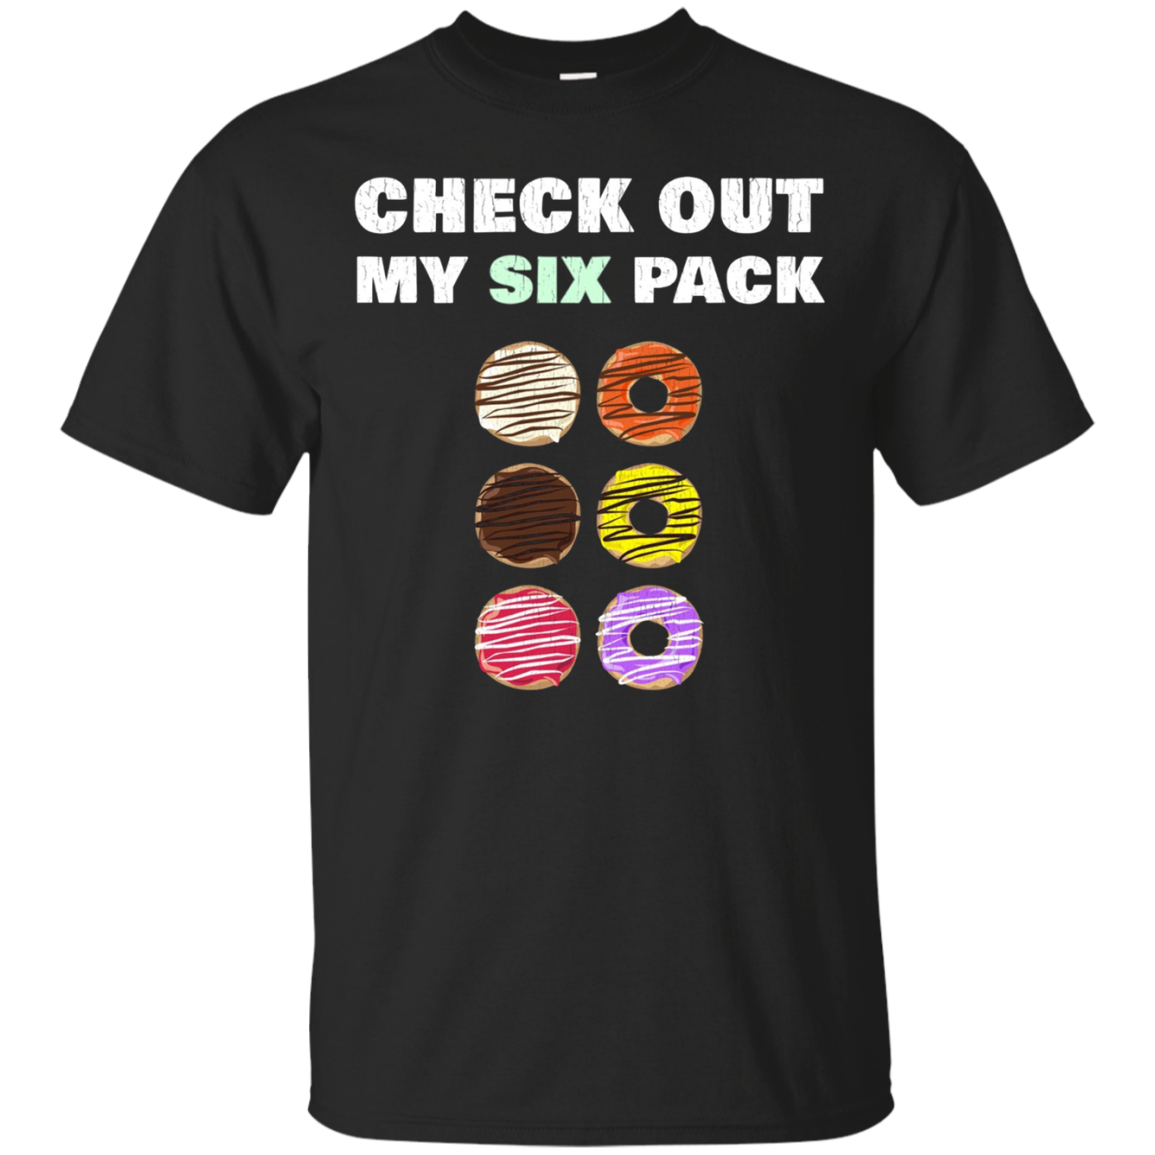 Check Out My Six Pack Funny Donut Shirt for Gym and Workouts